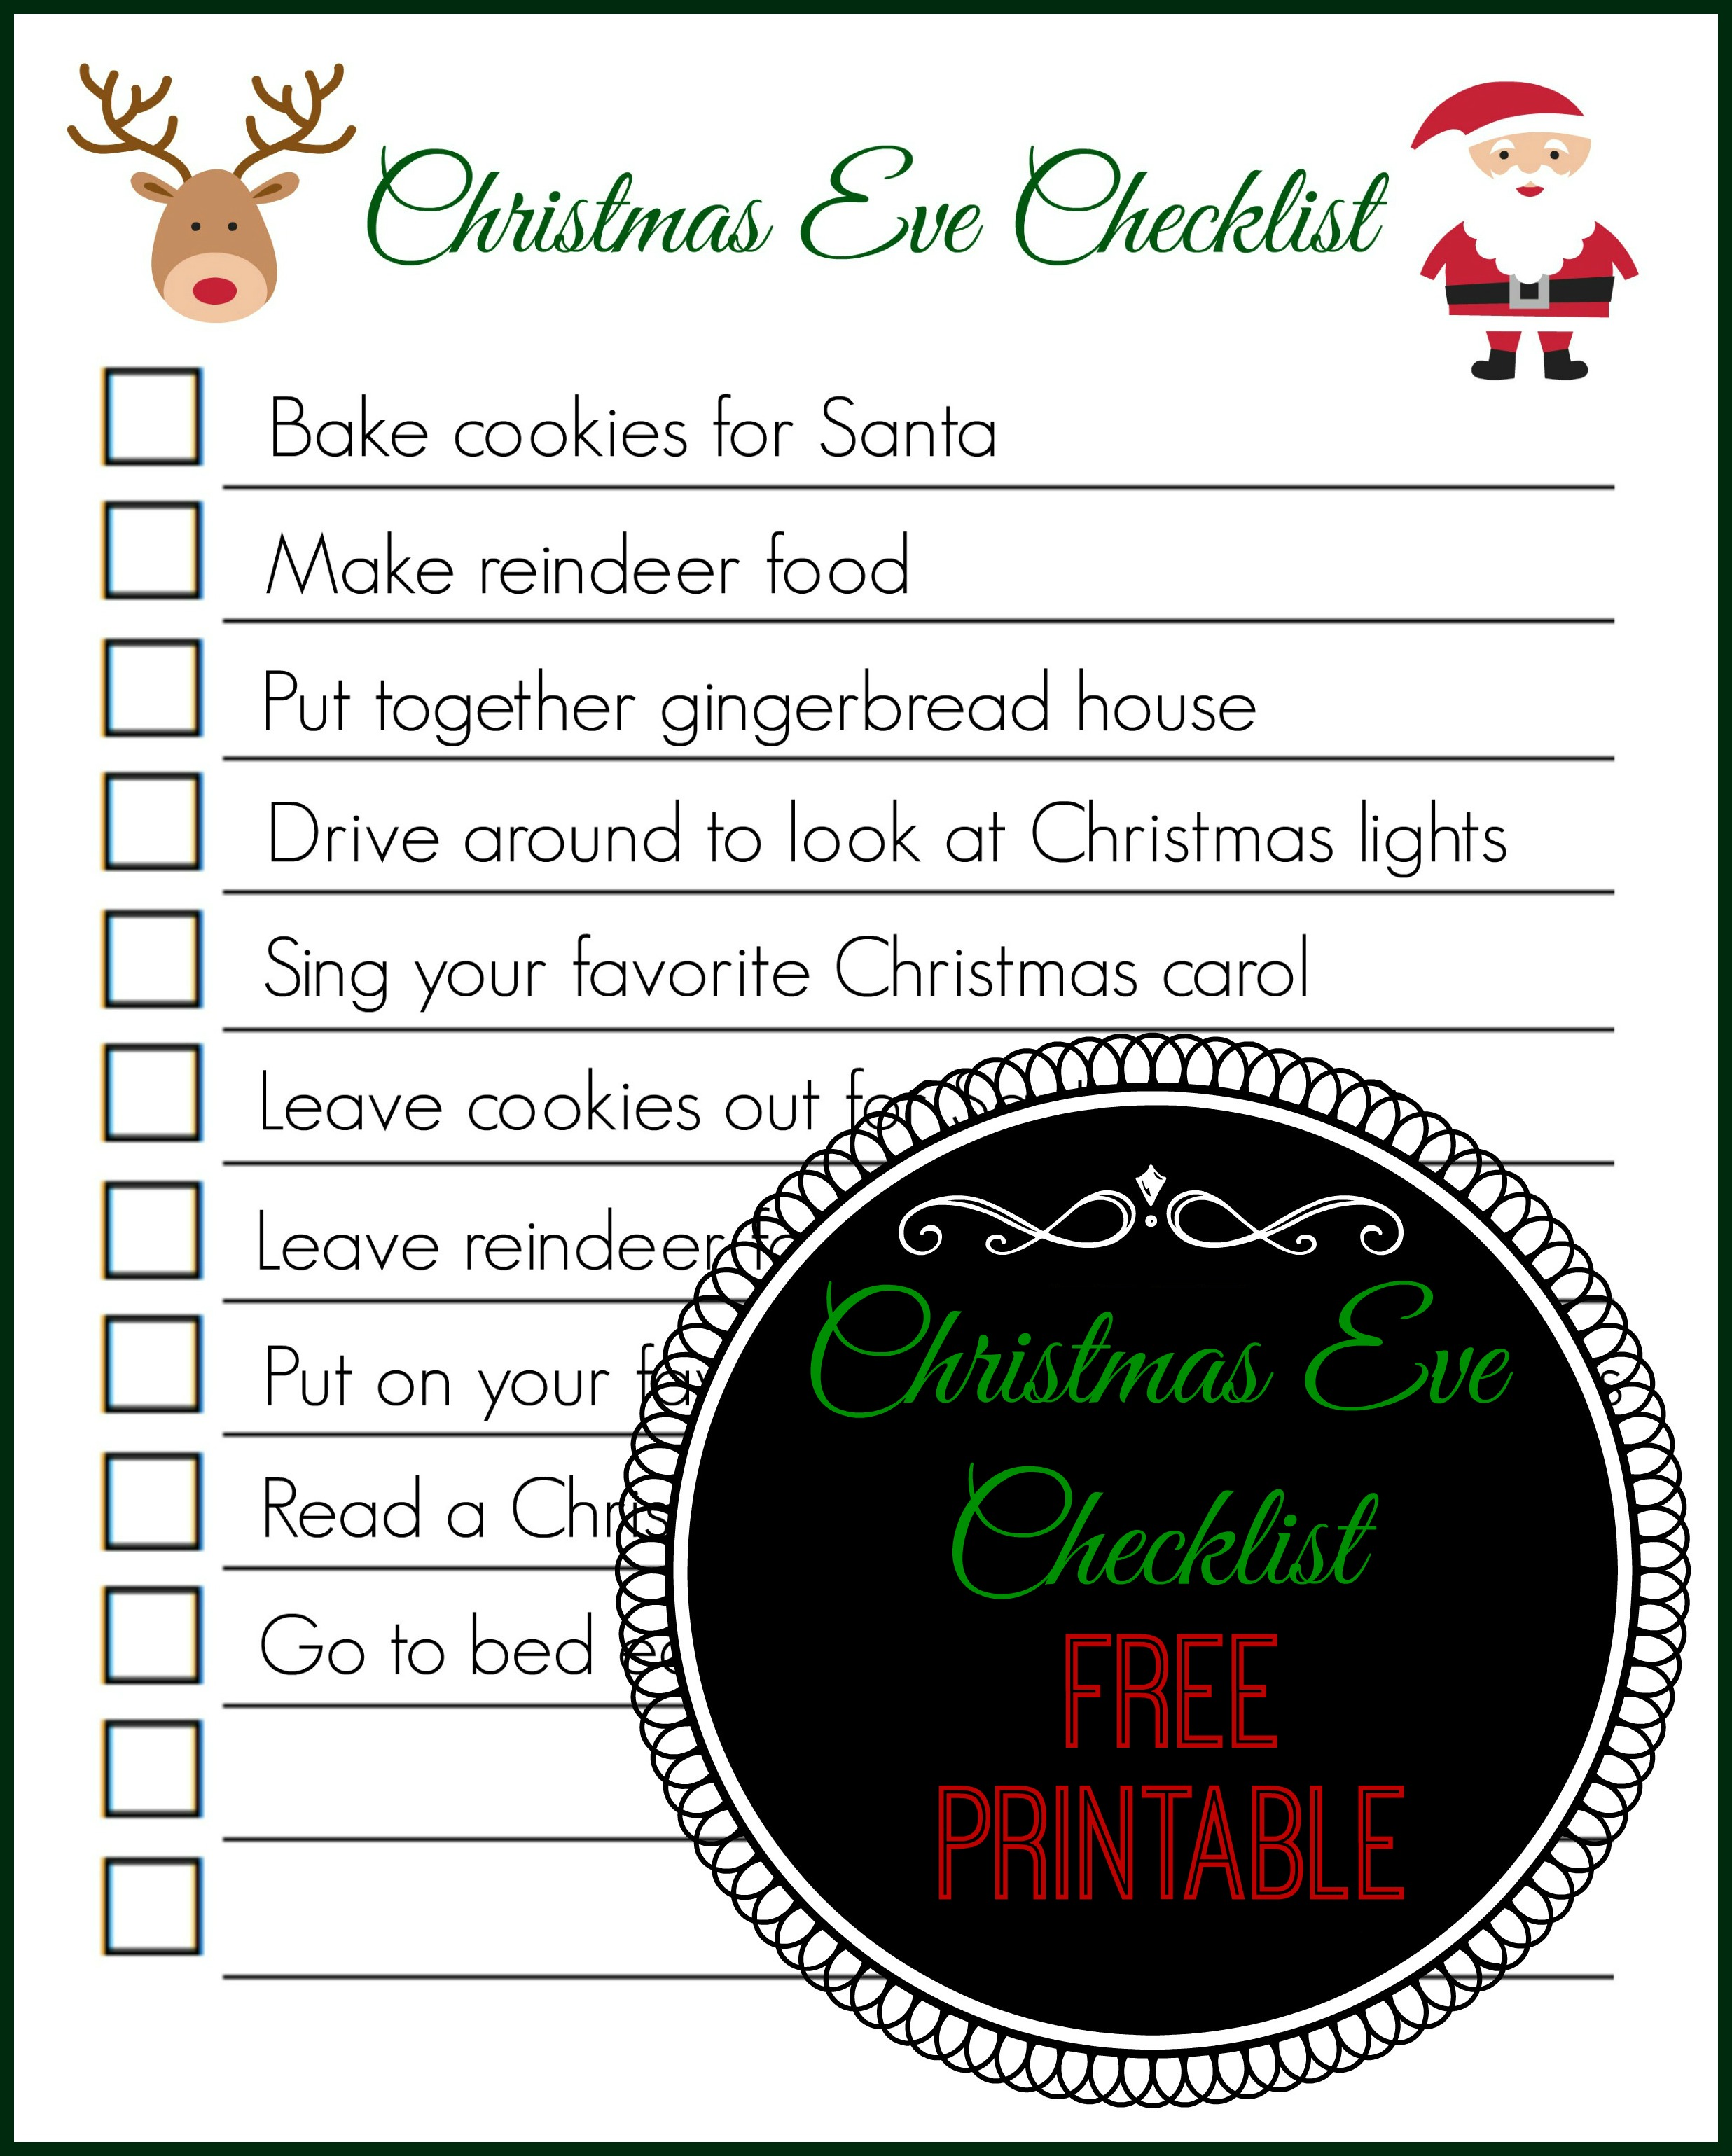 Christmas Eve Checklist Free Printable